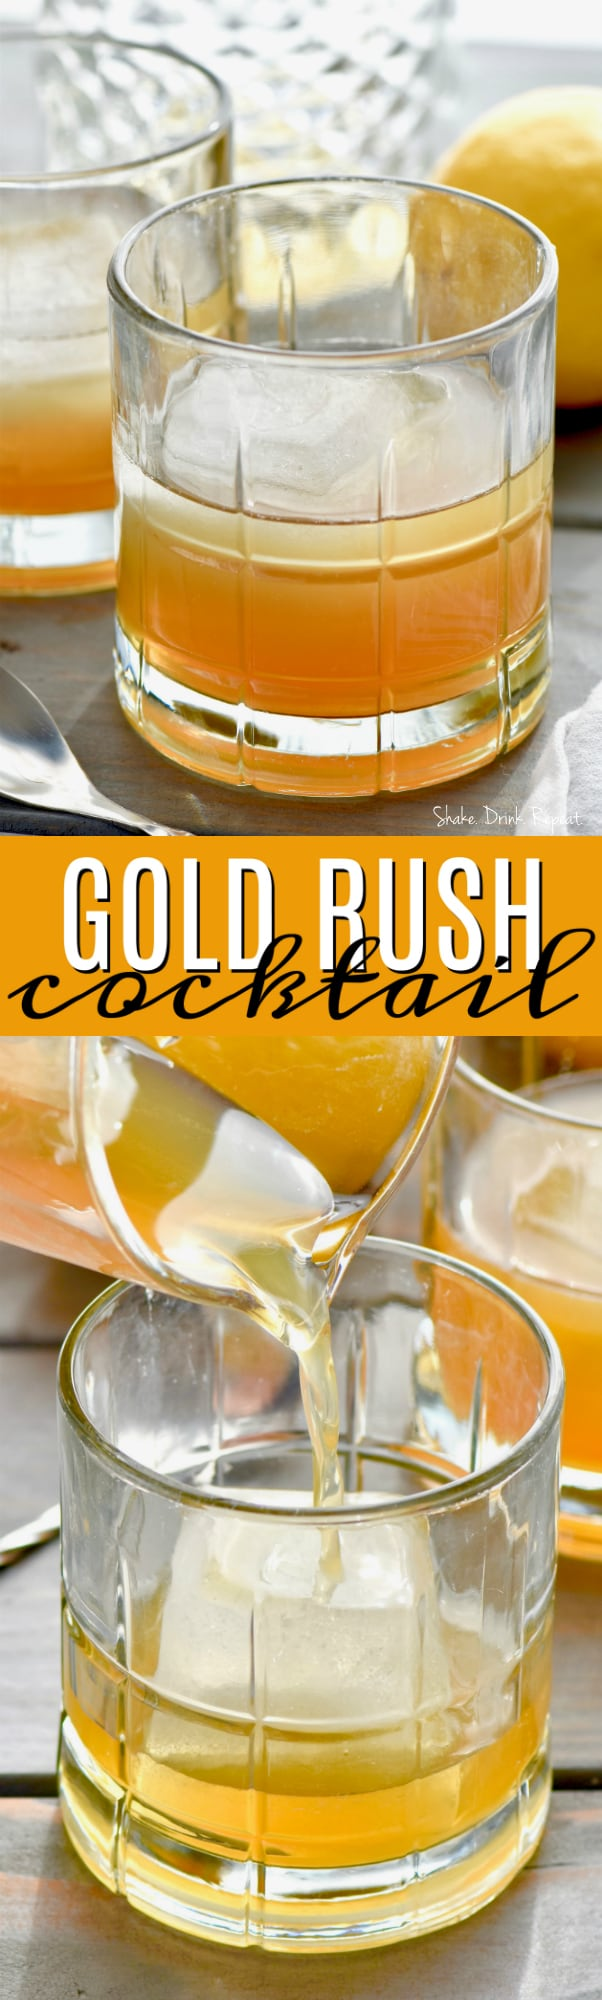 two images of a gold rush cocktail